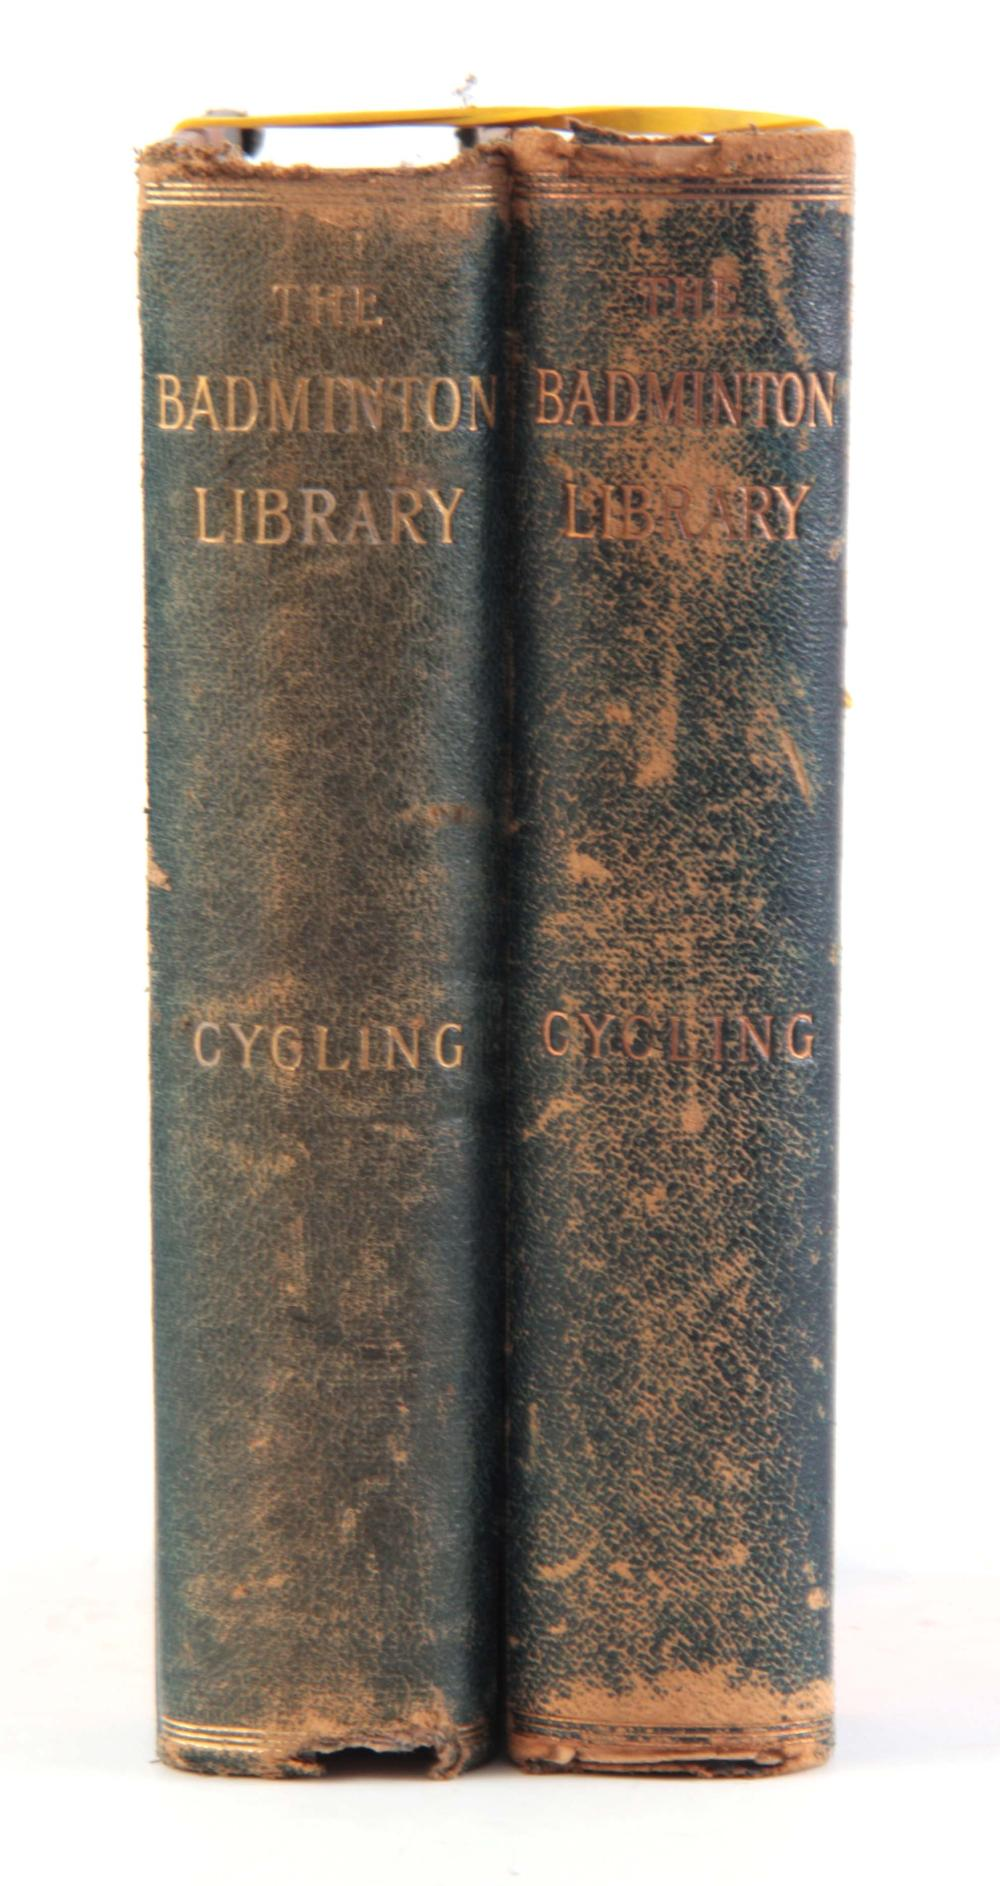 A SET OF 2 BOOKS, THE BADMINTON LIBRARY CYCLING by